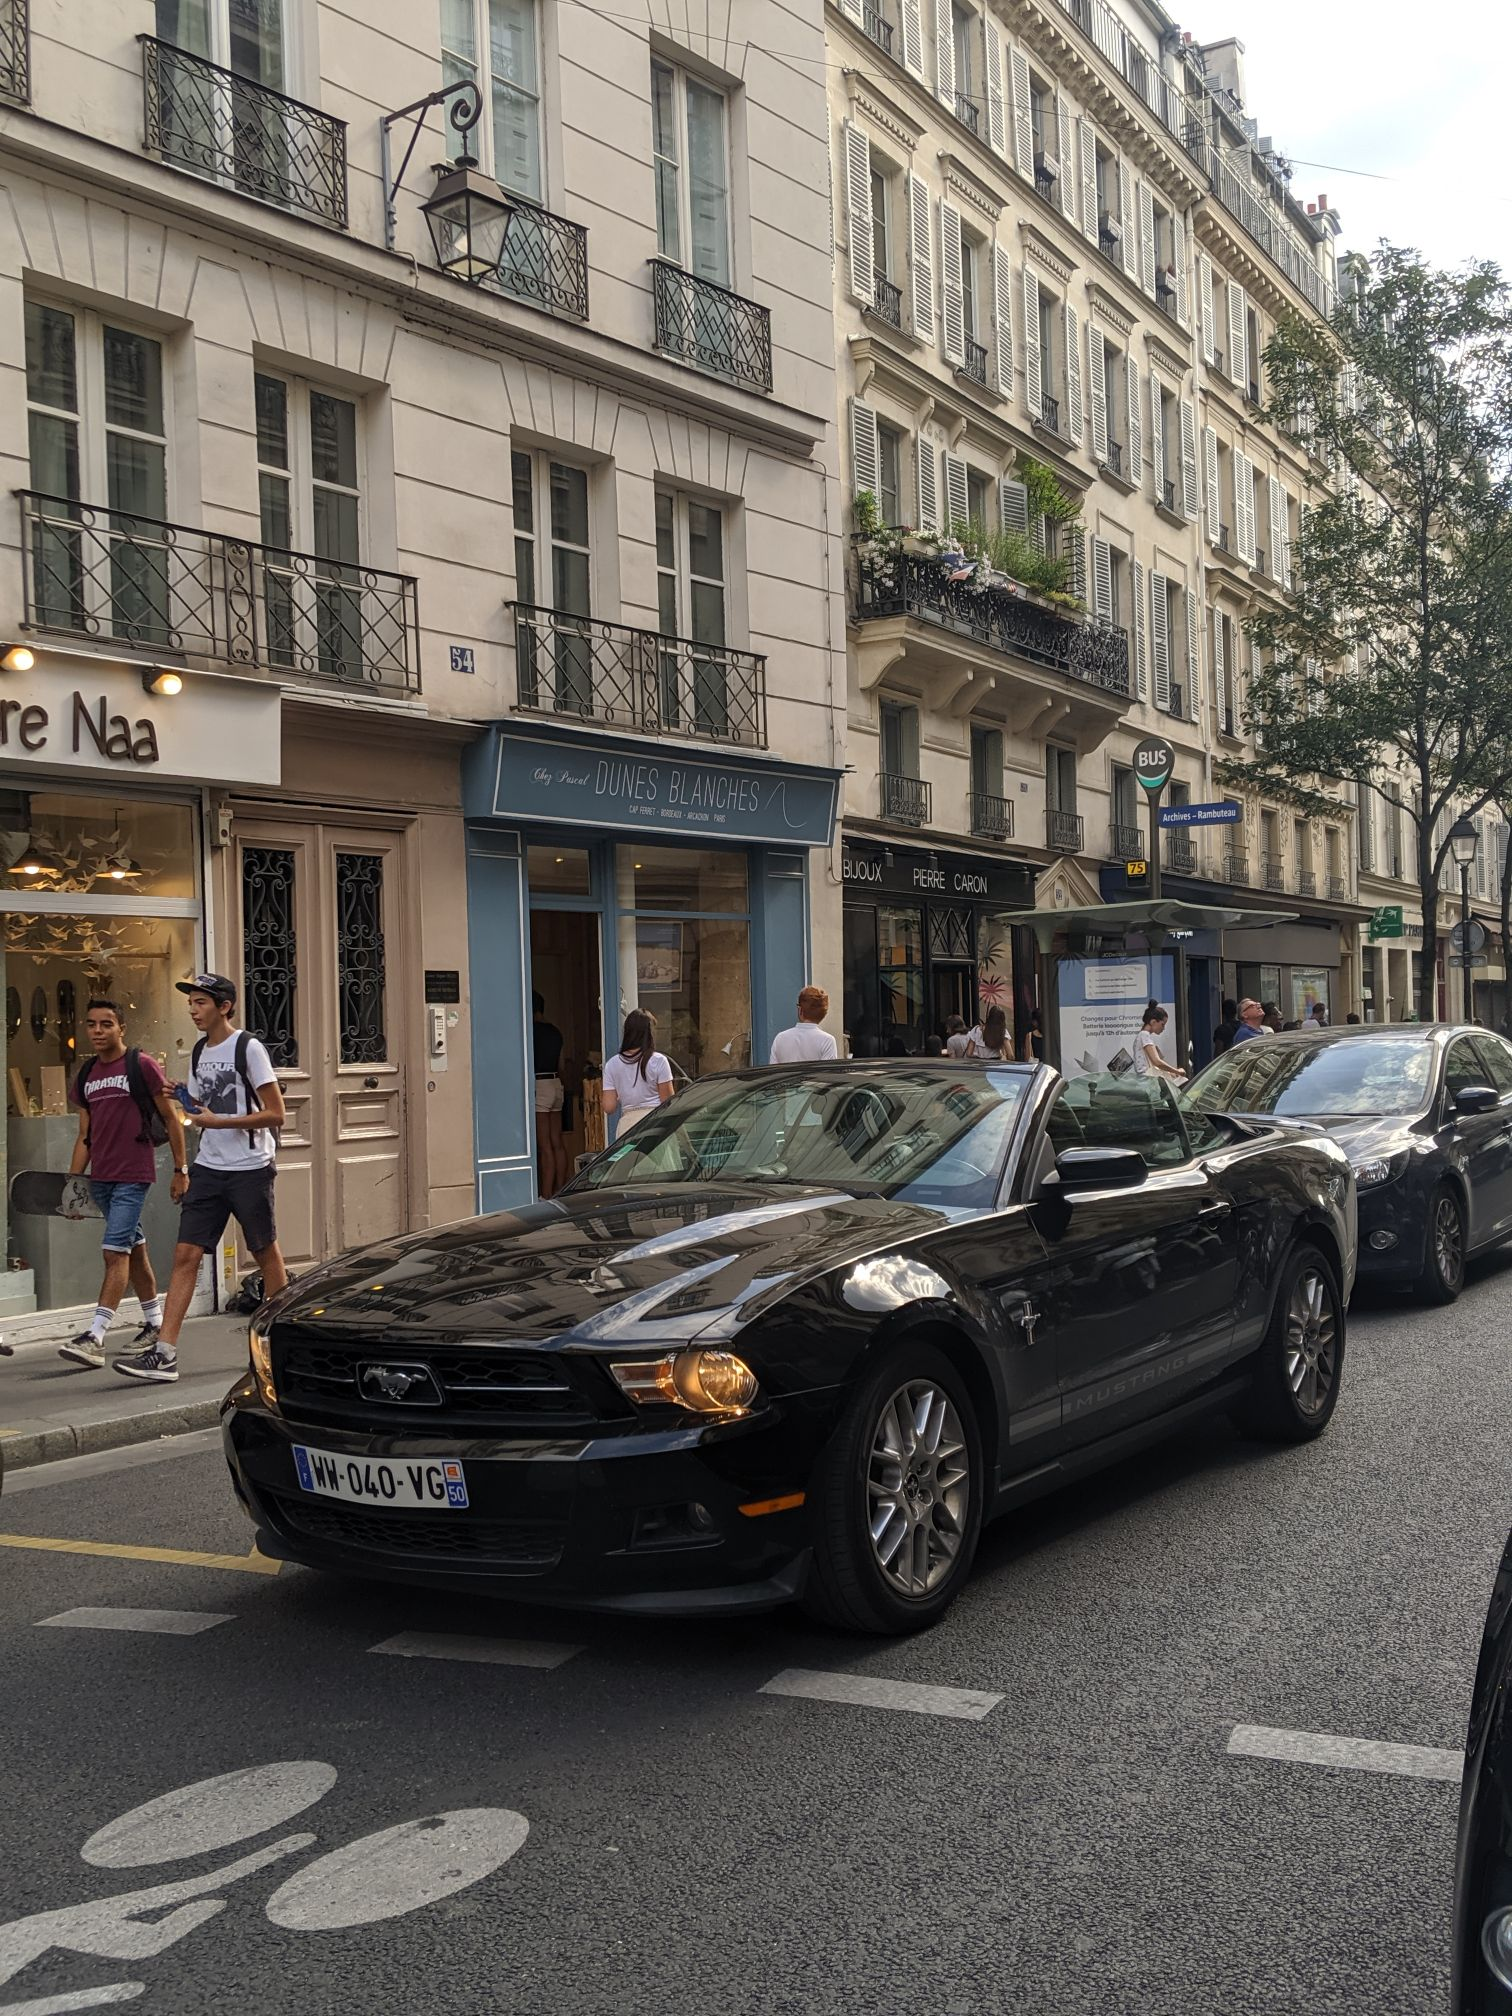 Paris Cars Ford Mustang Black